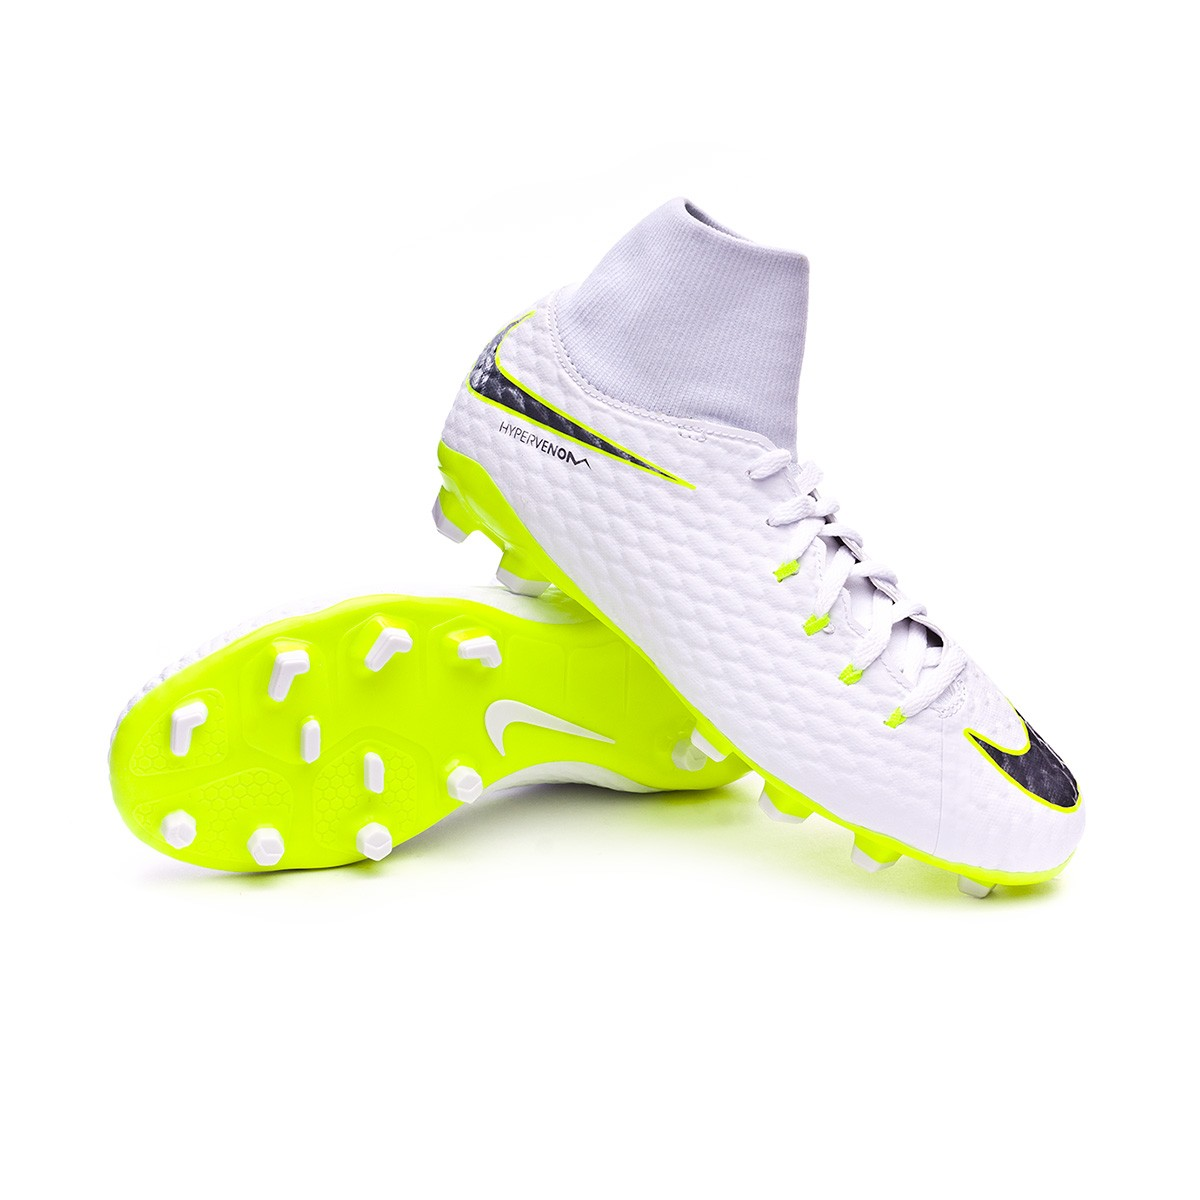 sale retailer d4e42 3f597 Bota Hypervenom Phantom III Academy DF FG Niño White-Metallic cool  grey-Volt-Metallic cool g